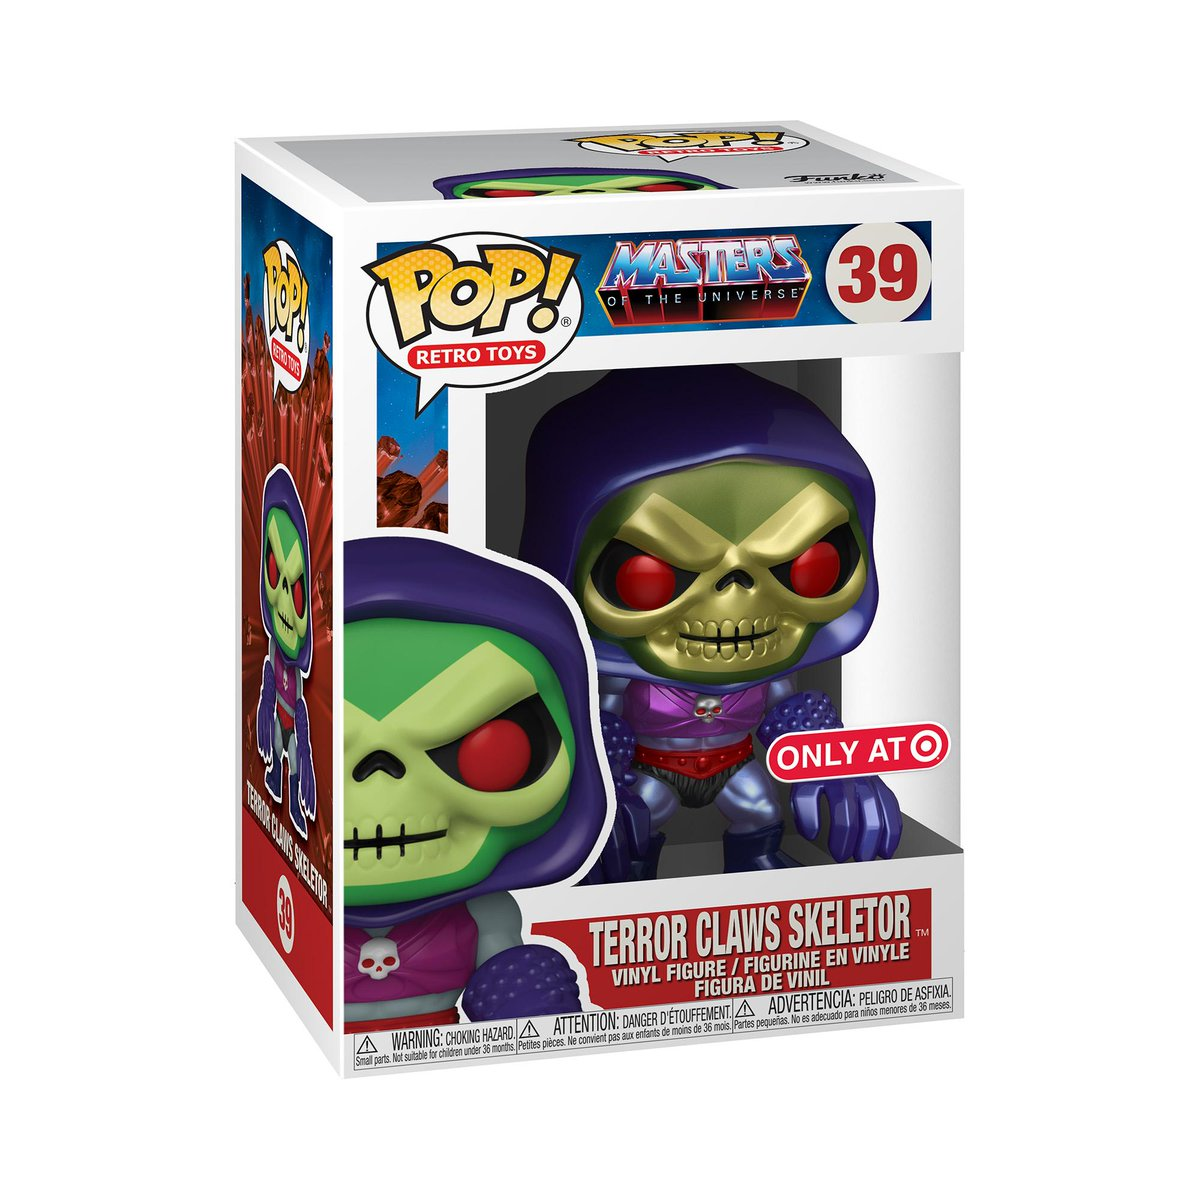 RT & follow @OriginalFunko for the chance to WIN this Target exclusive Terror Claws Skeletor Pop! #Funkogiveaway #giveaway #Funko #FunkoPop #MOTU